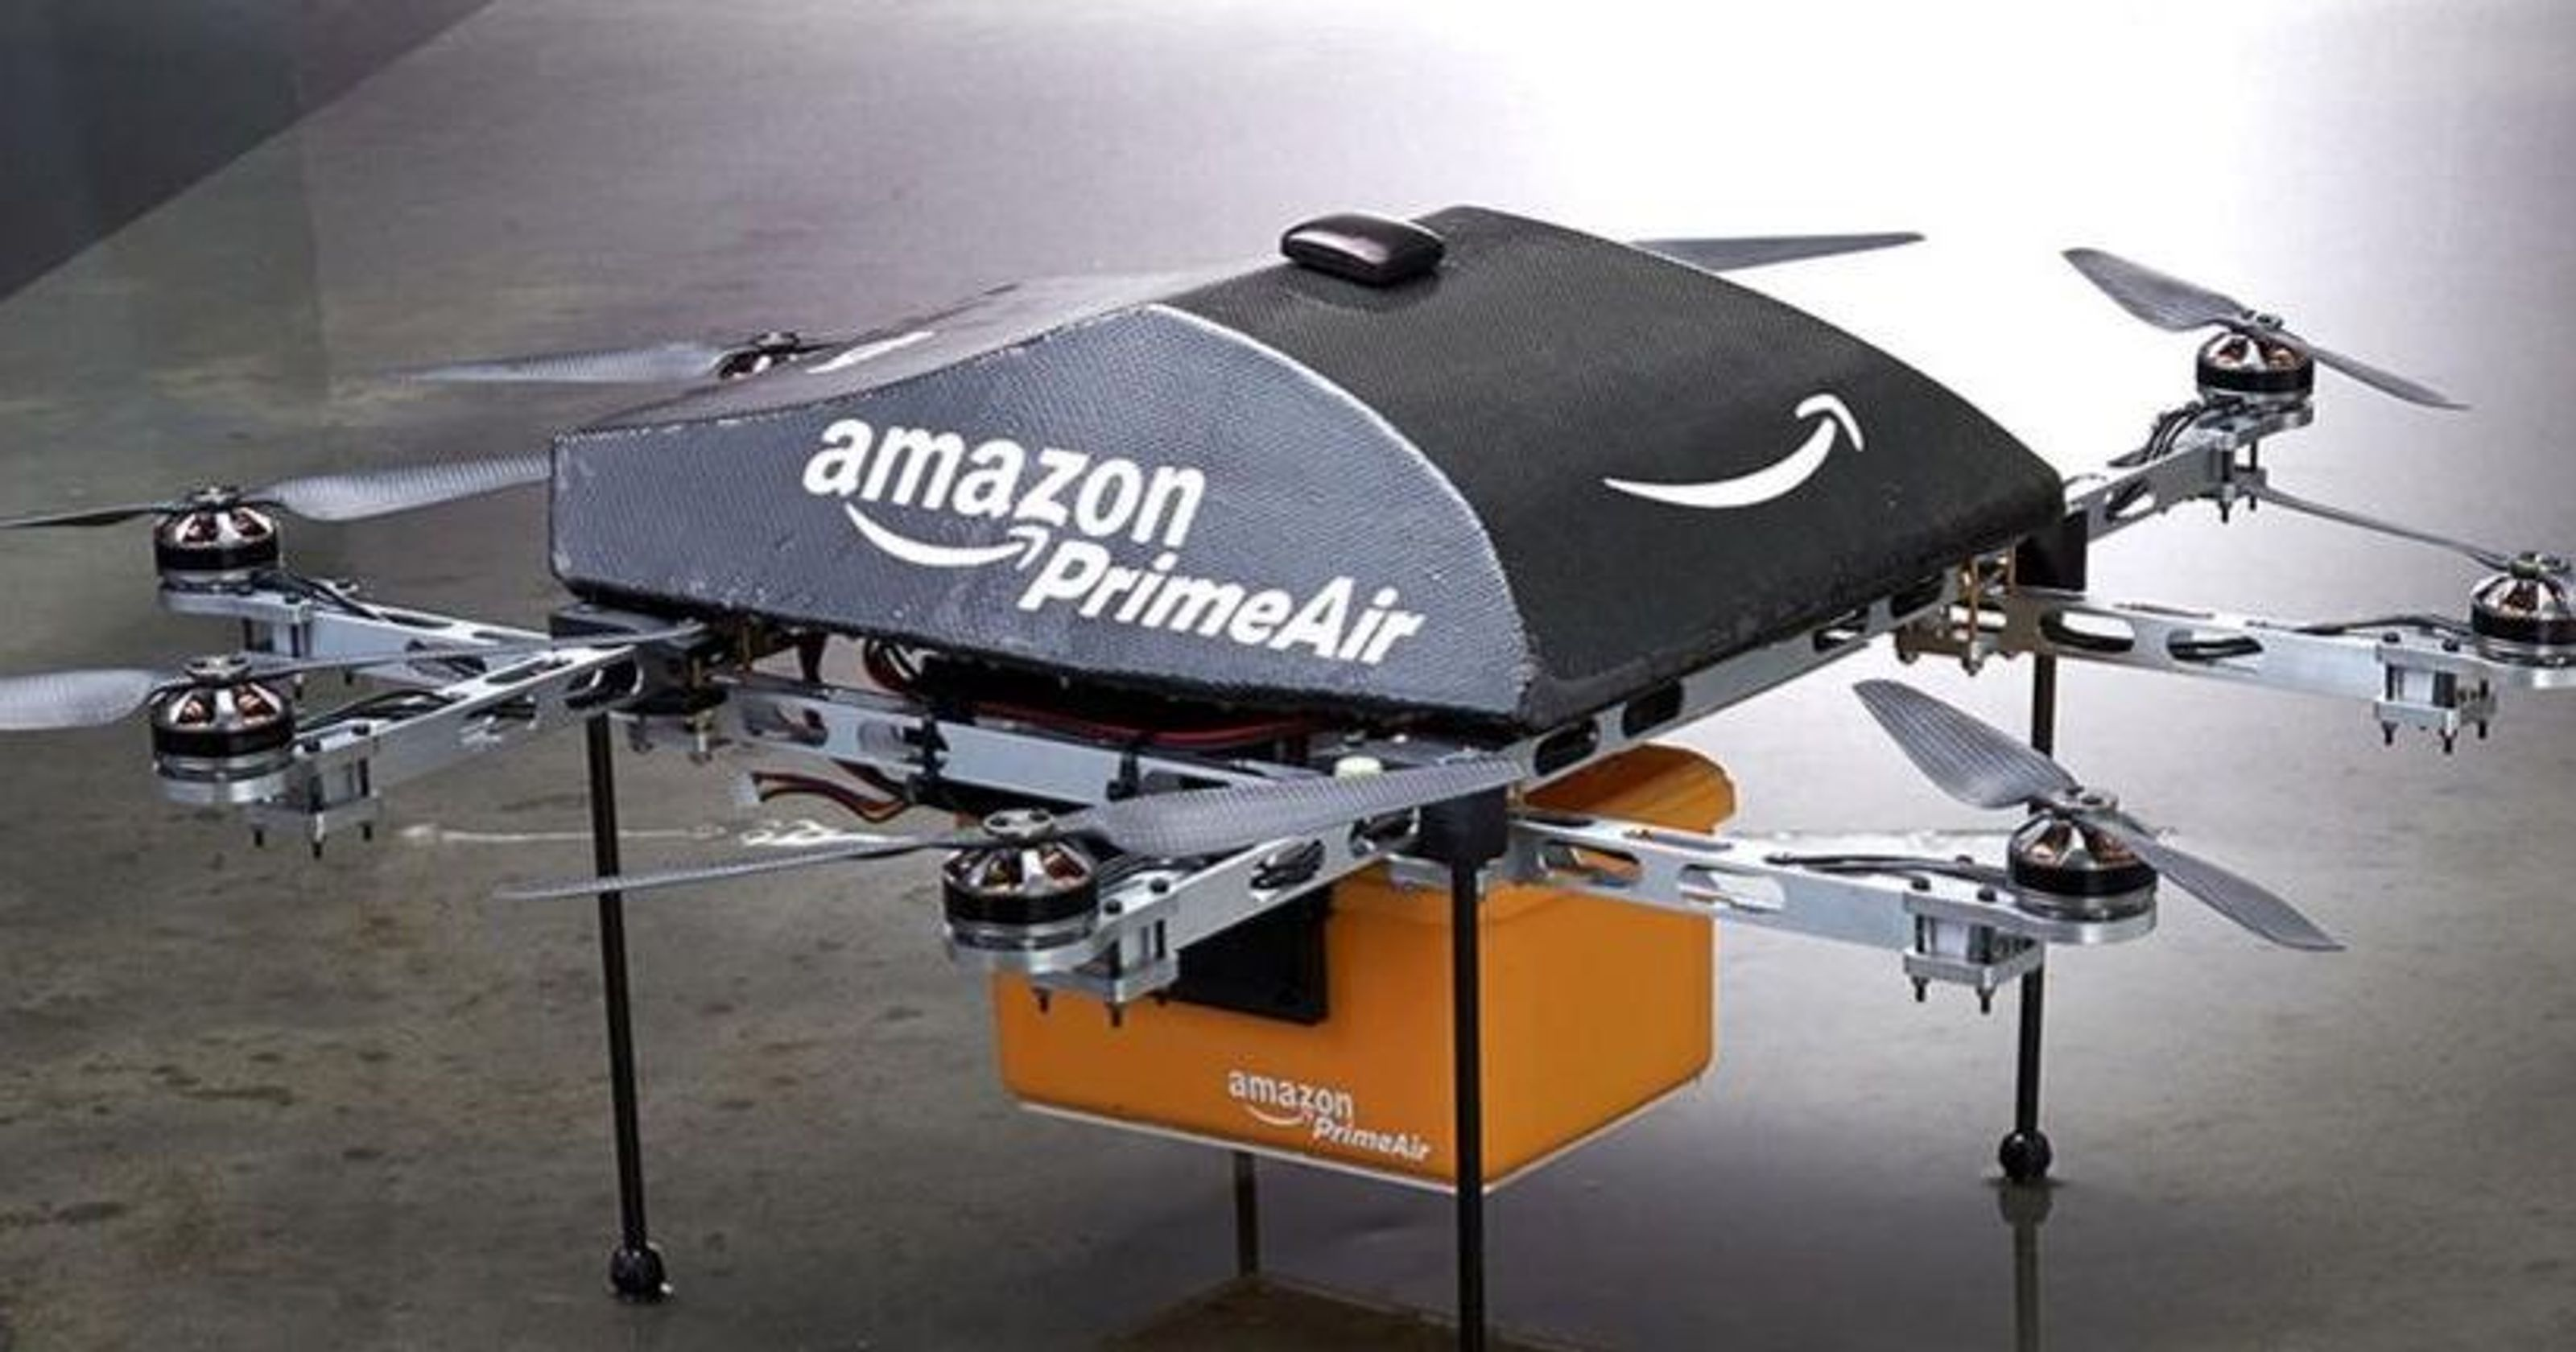 Amazon: arriva Prime Air, il drone per le consegne aeree